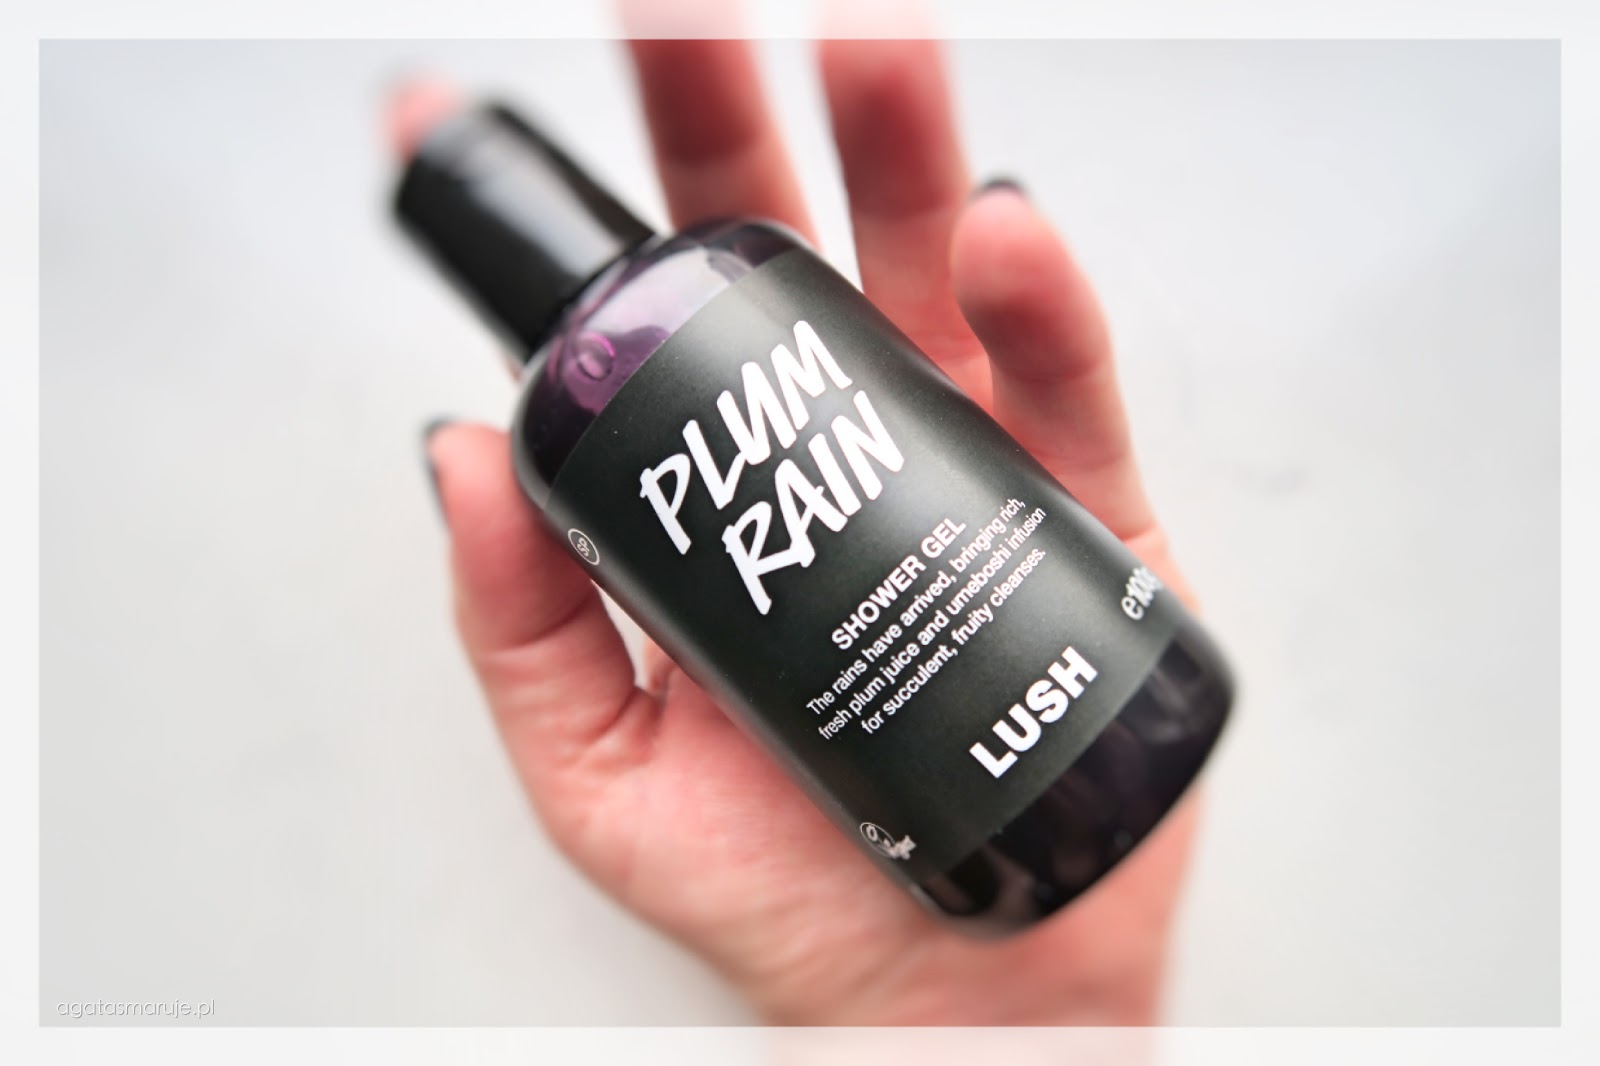 Lush Plum Rain opinie review